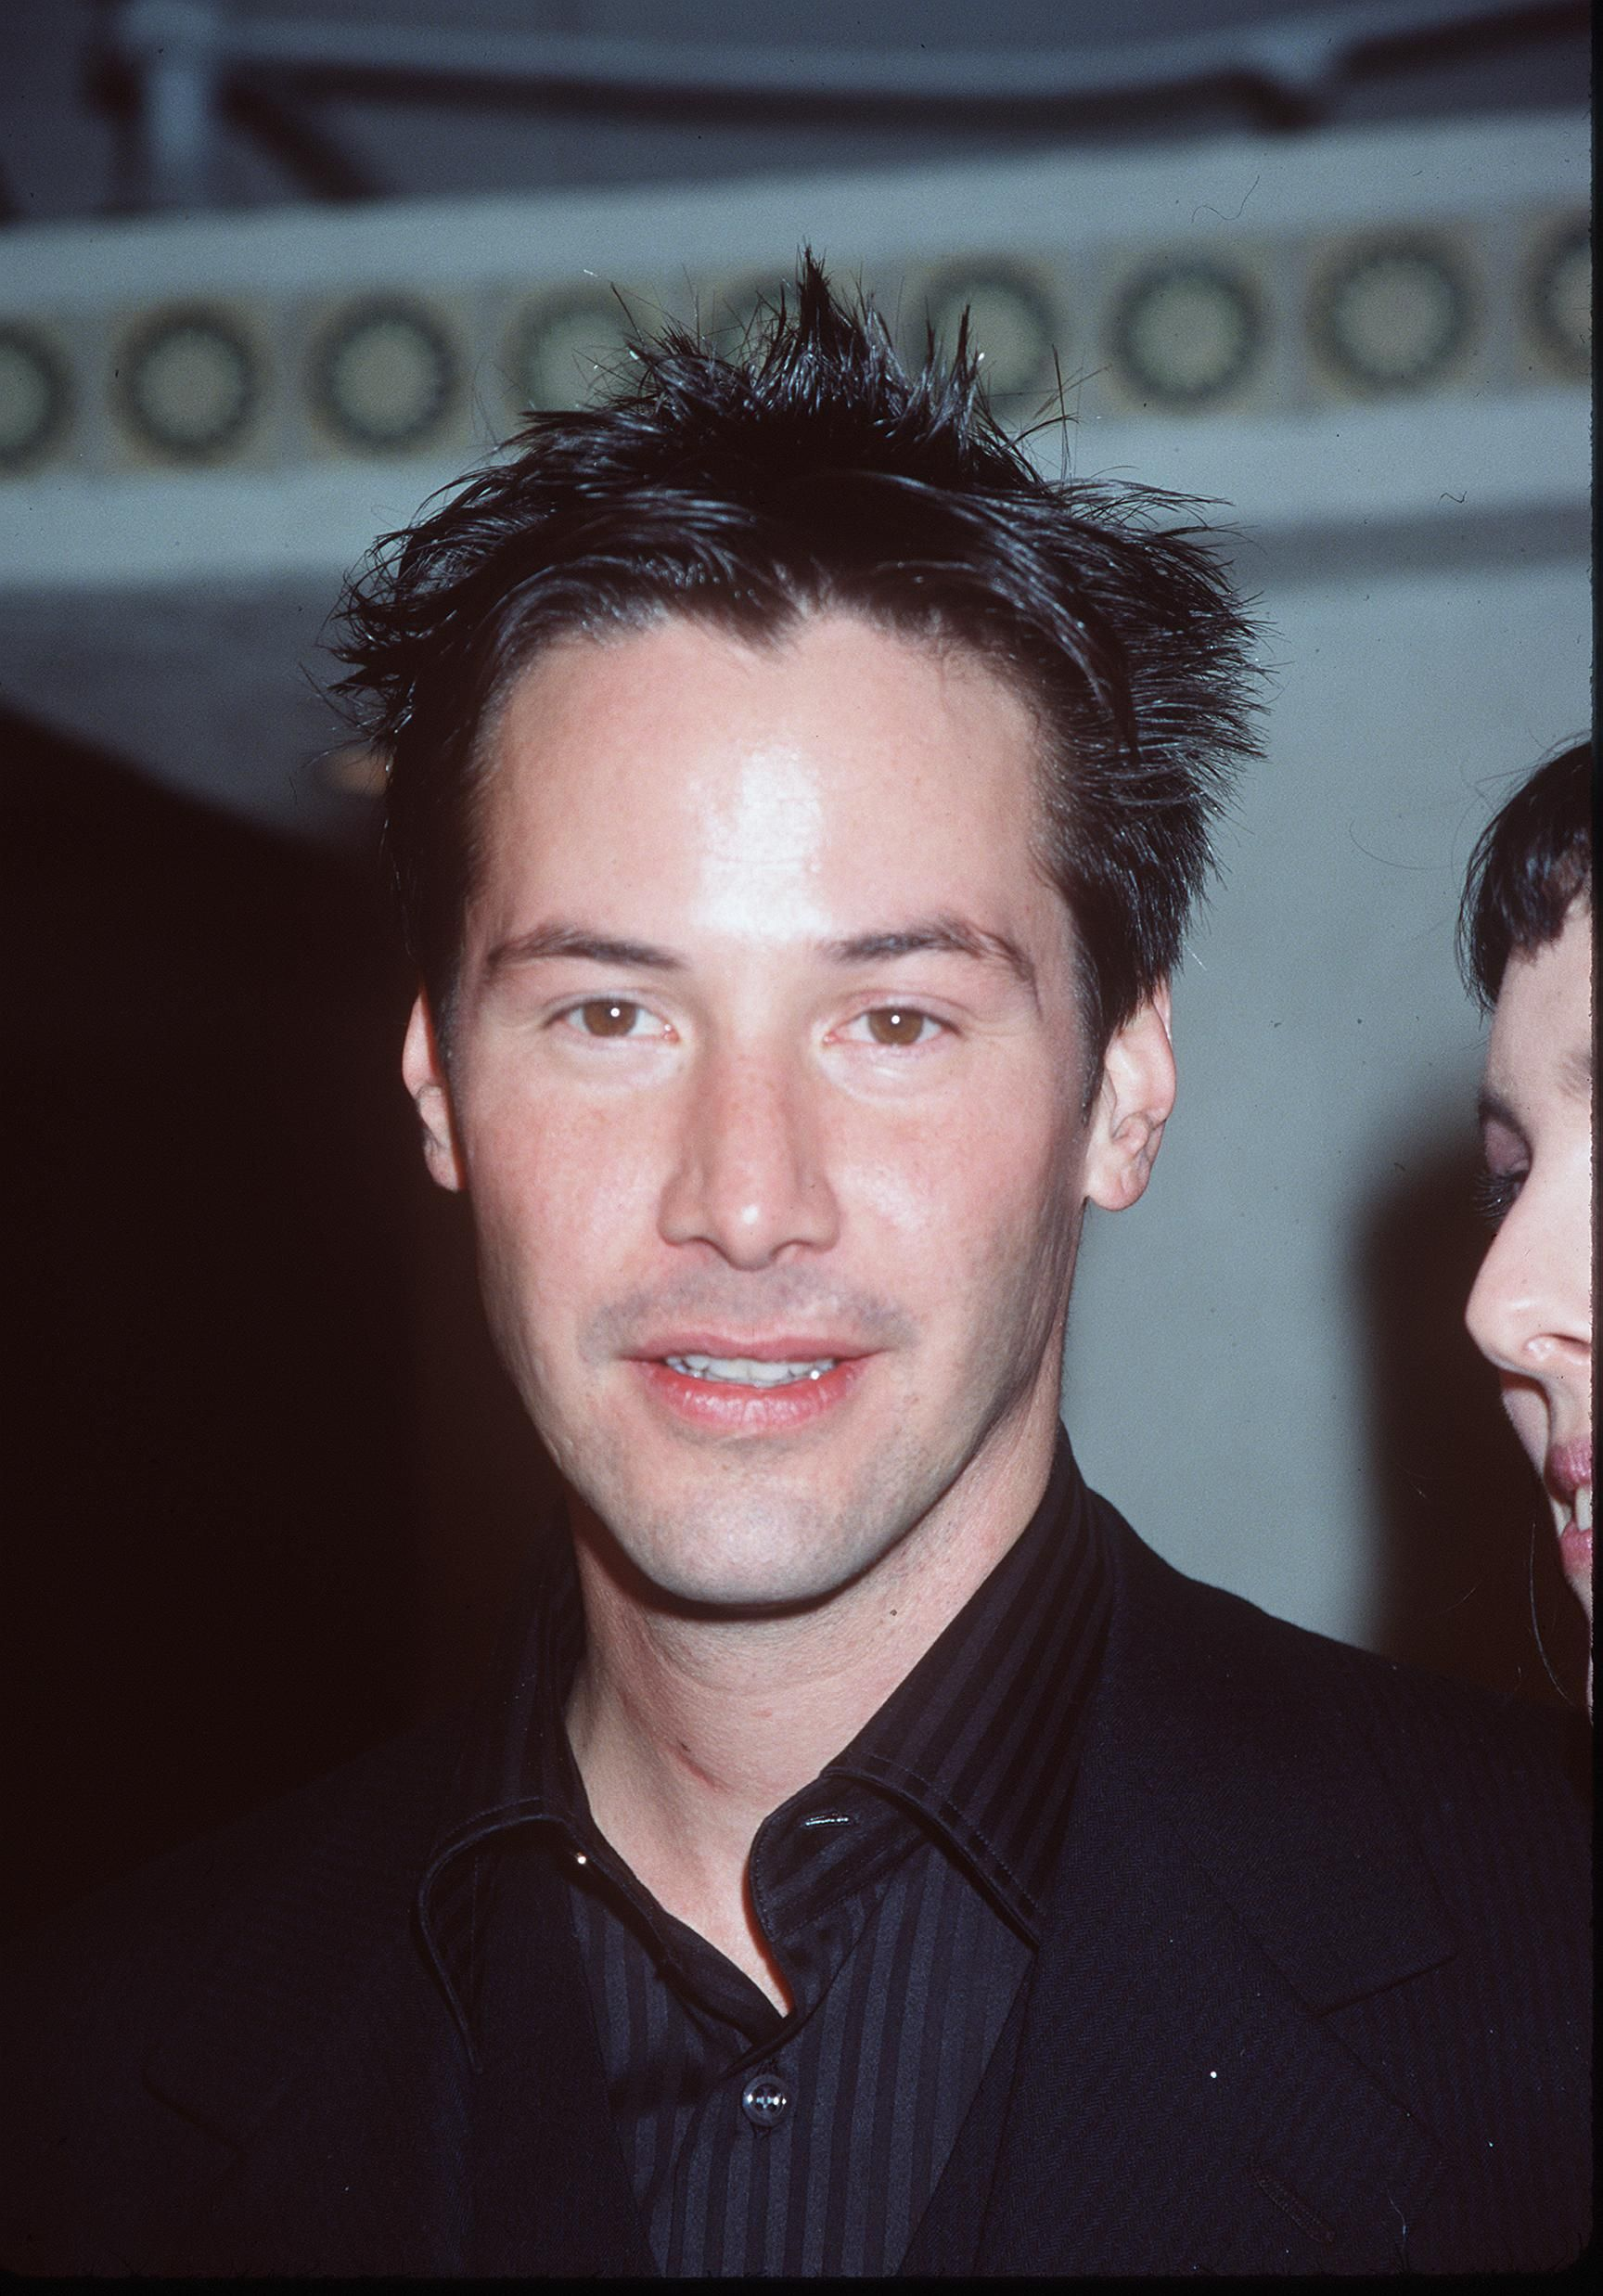 """Keanu Reeves at the world premiere showing of """"The Matrix"""" at the Mann's Village Theatre on March 24, 1999, in Westwood, California   Photo: Brenda Chase/Online USA, Inc./Getty Images"""